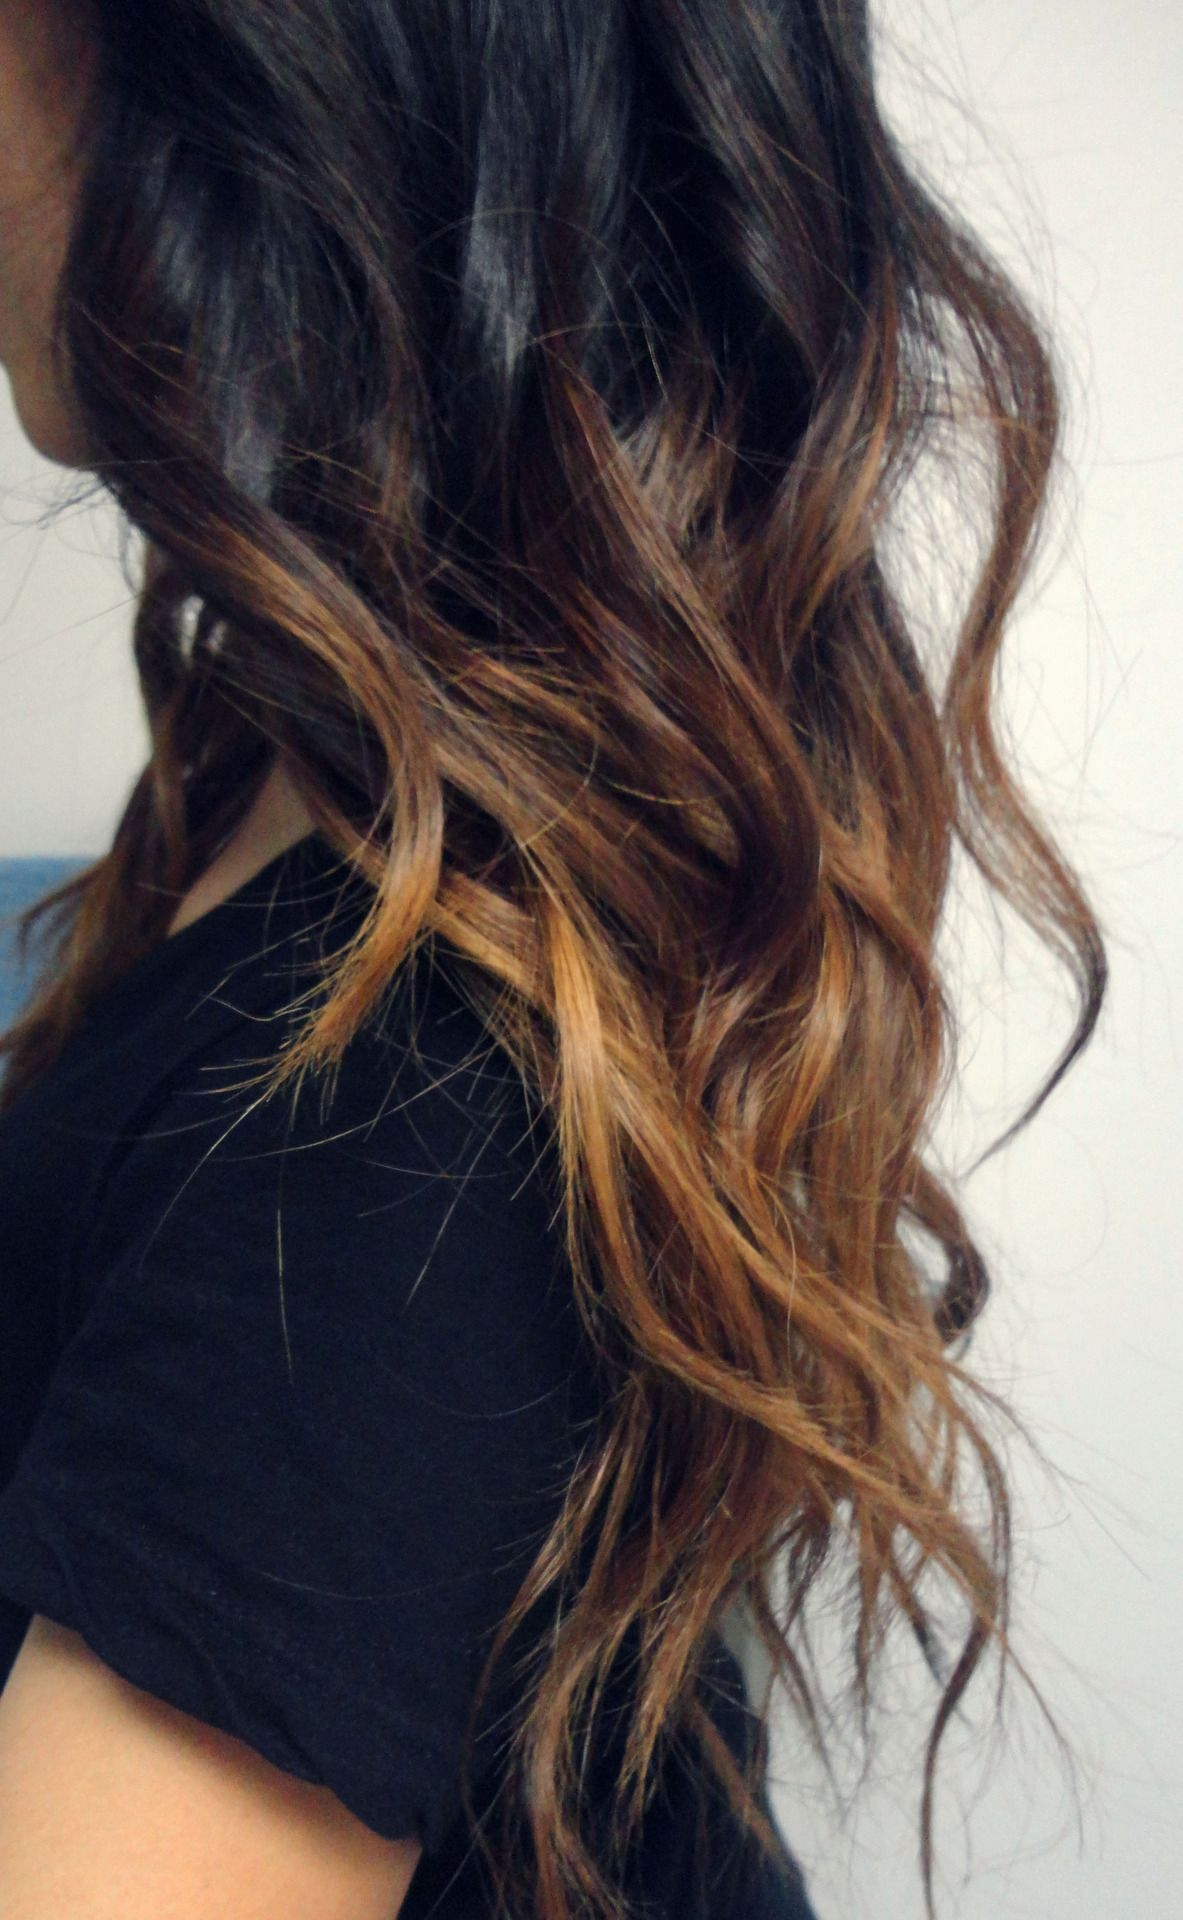 Long dark to light ombre hair katie odegard spaulding want to do